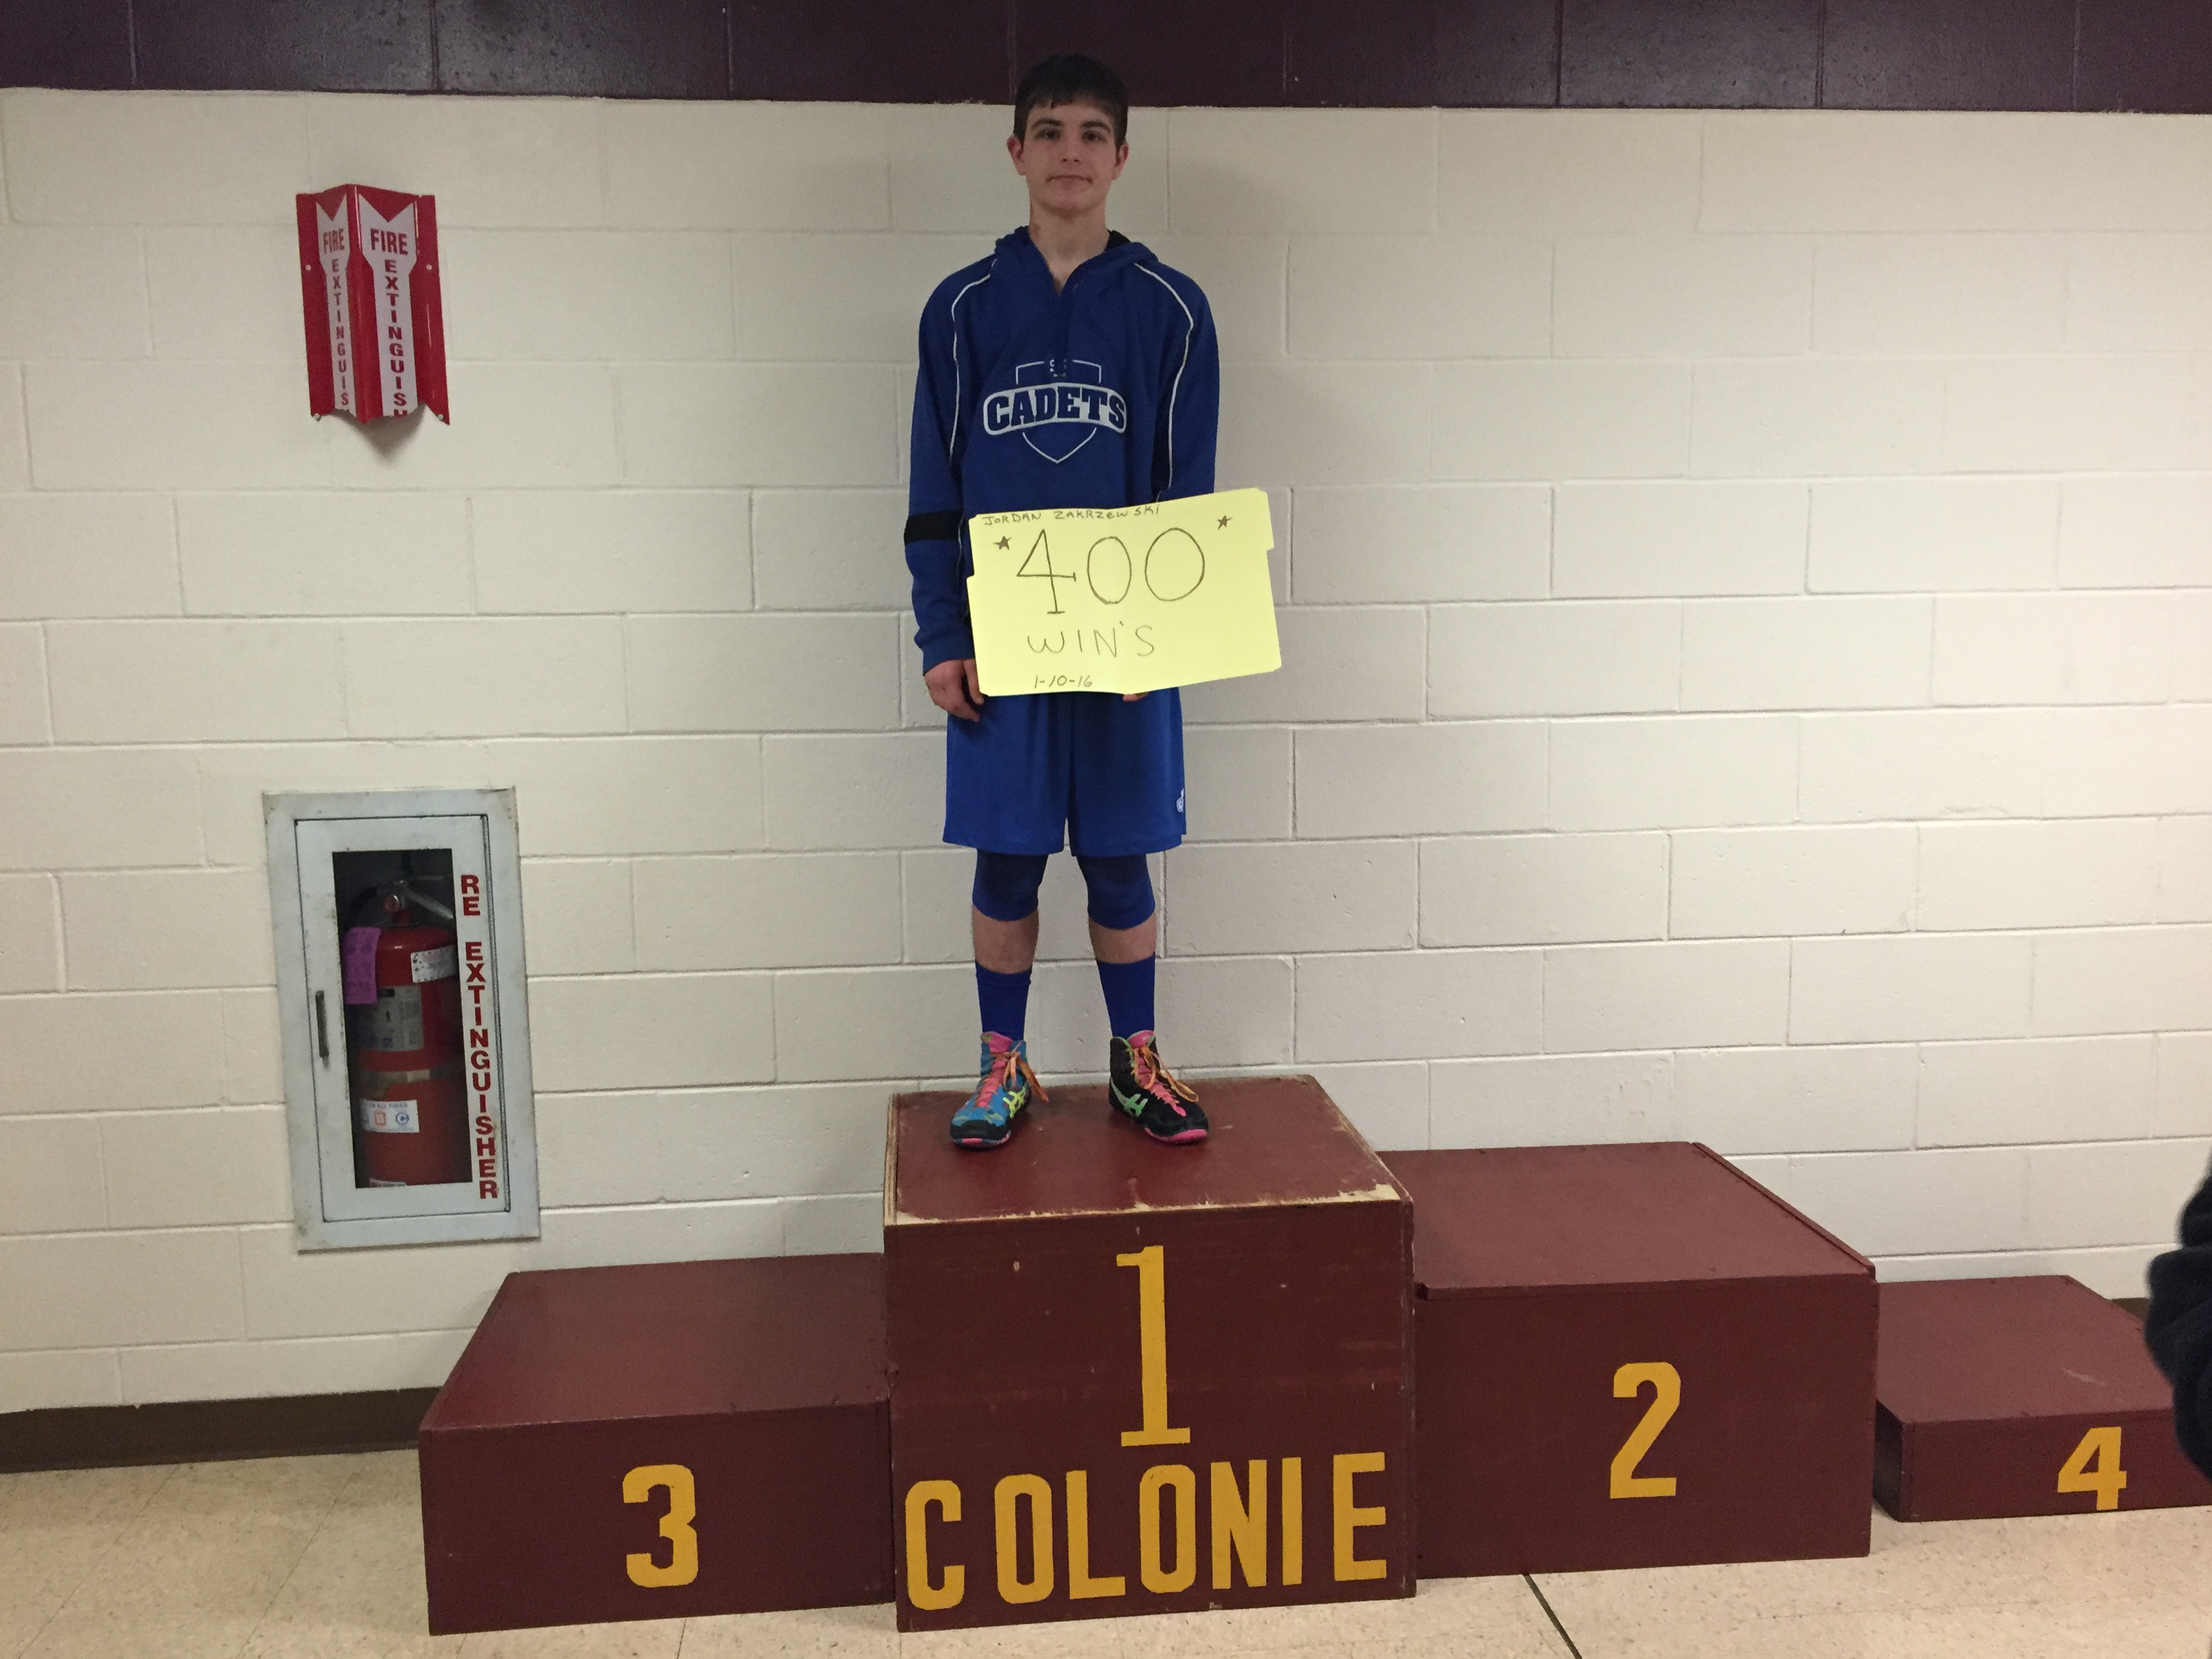 Jordan Zakrzewski (LaSalle Institute) Gets his 400th win at the Colonie Wrestling Tournament